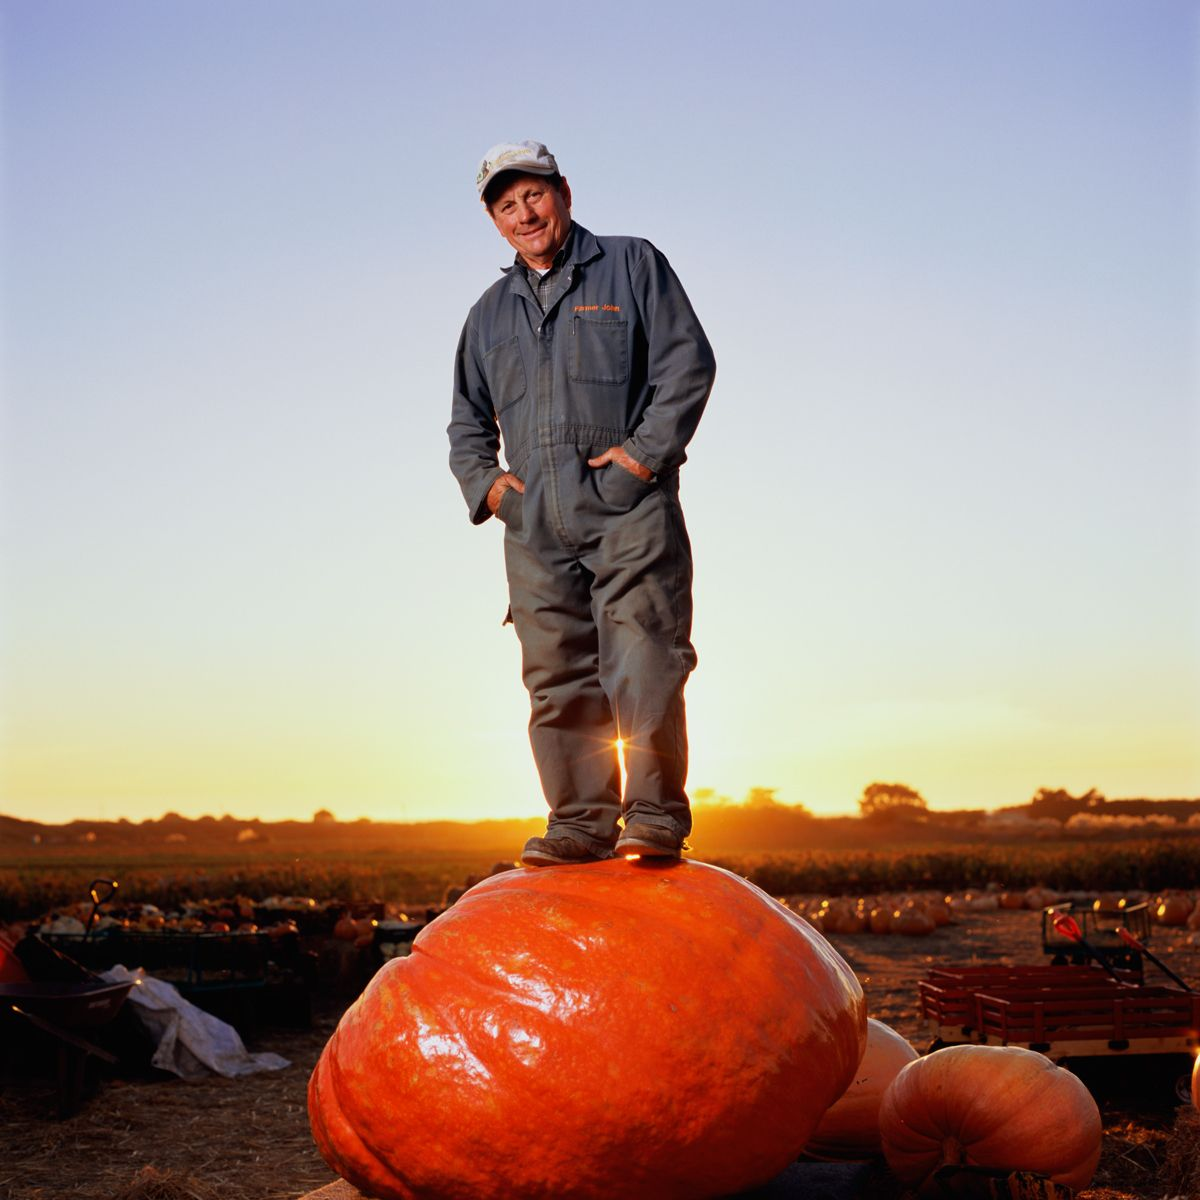 """Farmer John"" Muller.Daylight Farms, Half Moon Bay. Family Farming since 1947. Pumpkins, Flowers, Corn and Hay."